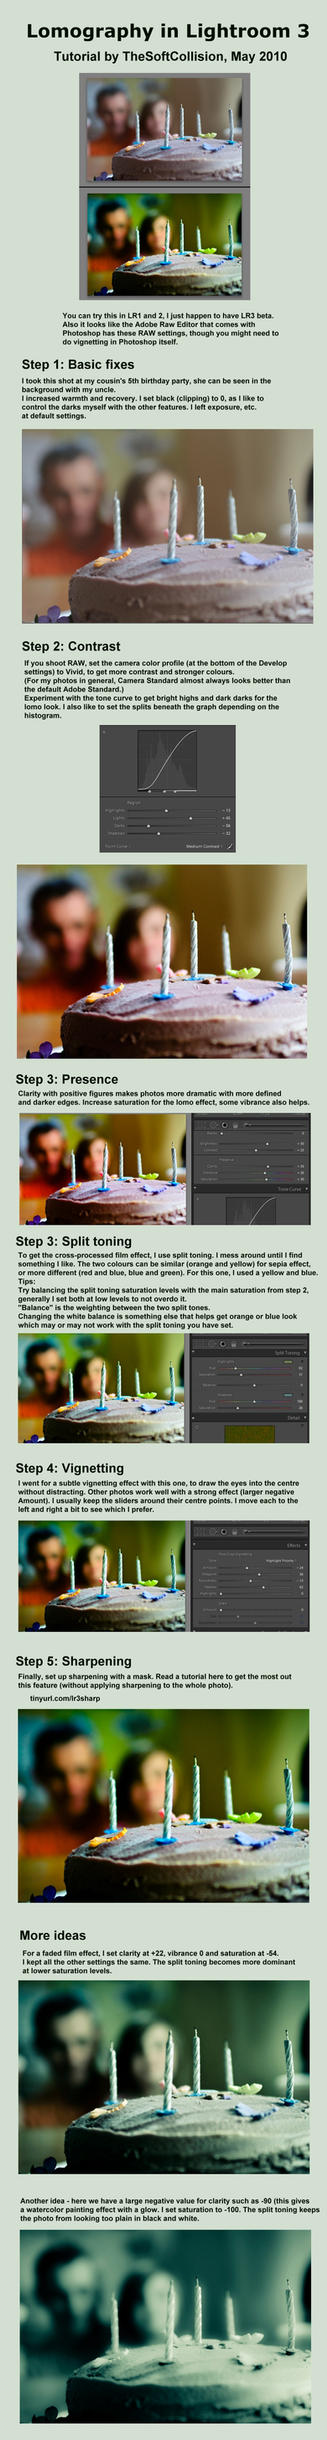 Lomo in Lightroom Tutorial by TheSoftCollision